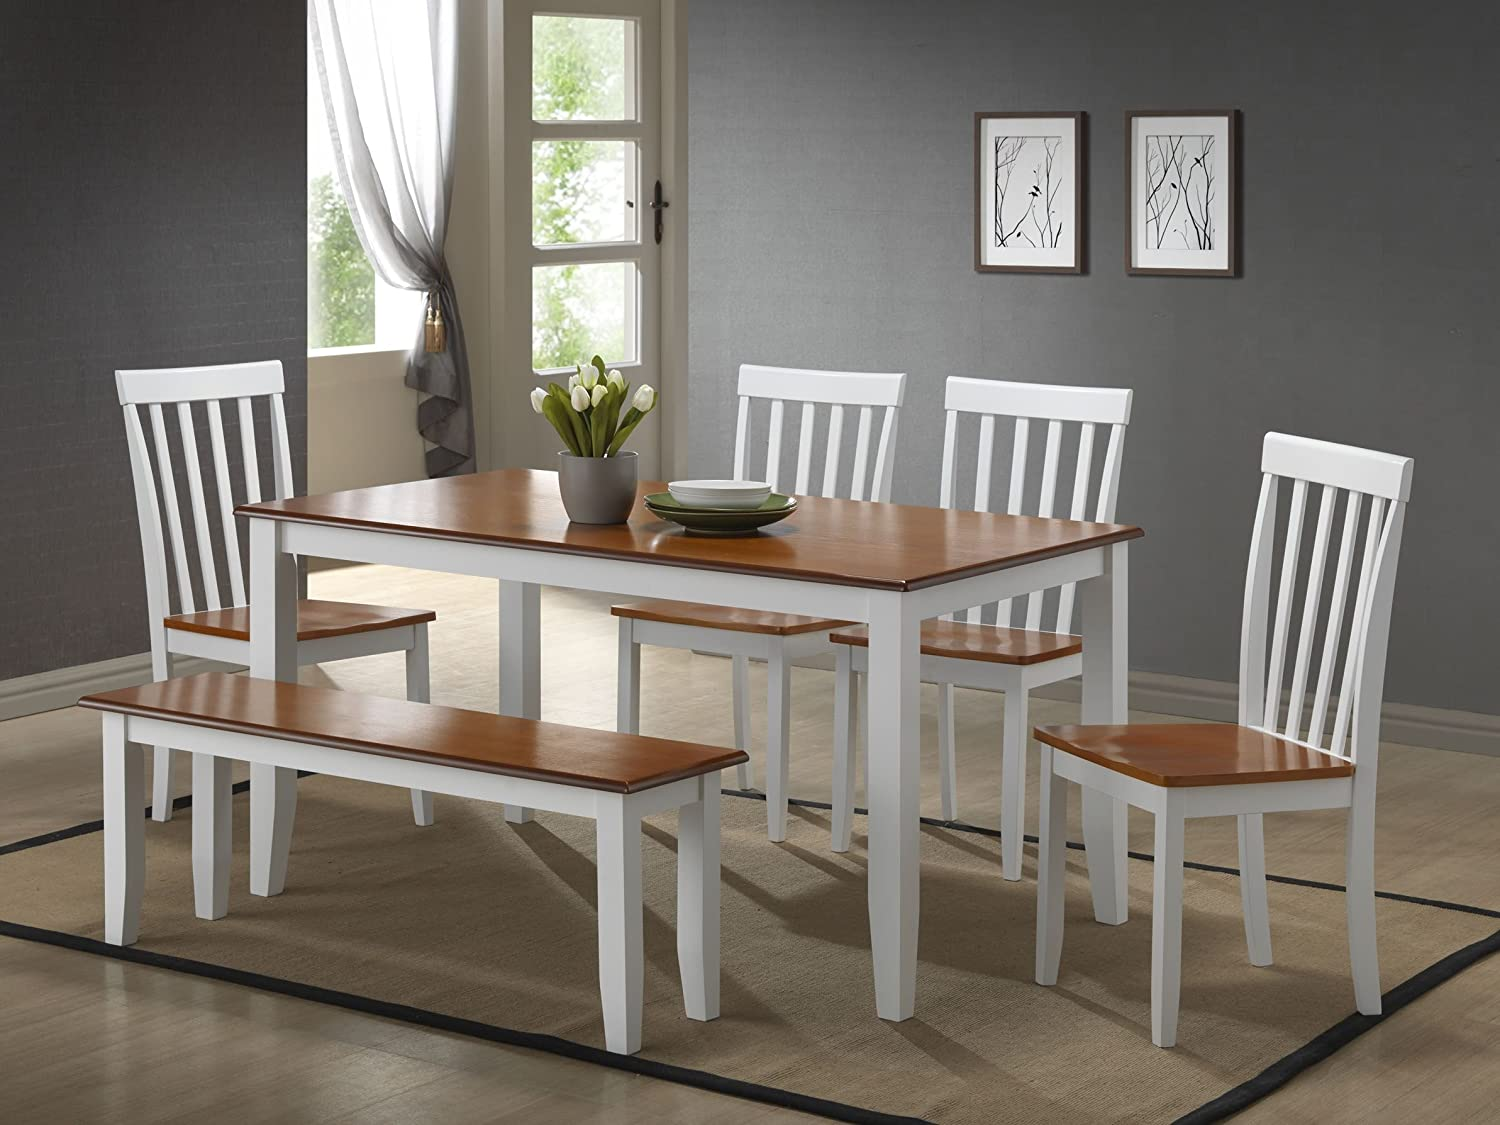 amazon com boraam 22034 bloomington 6 piece dining room set amazon com boraam 22034 bloomington 6 piece dining room set white honey oak table chair sets